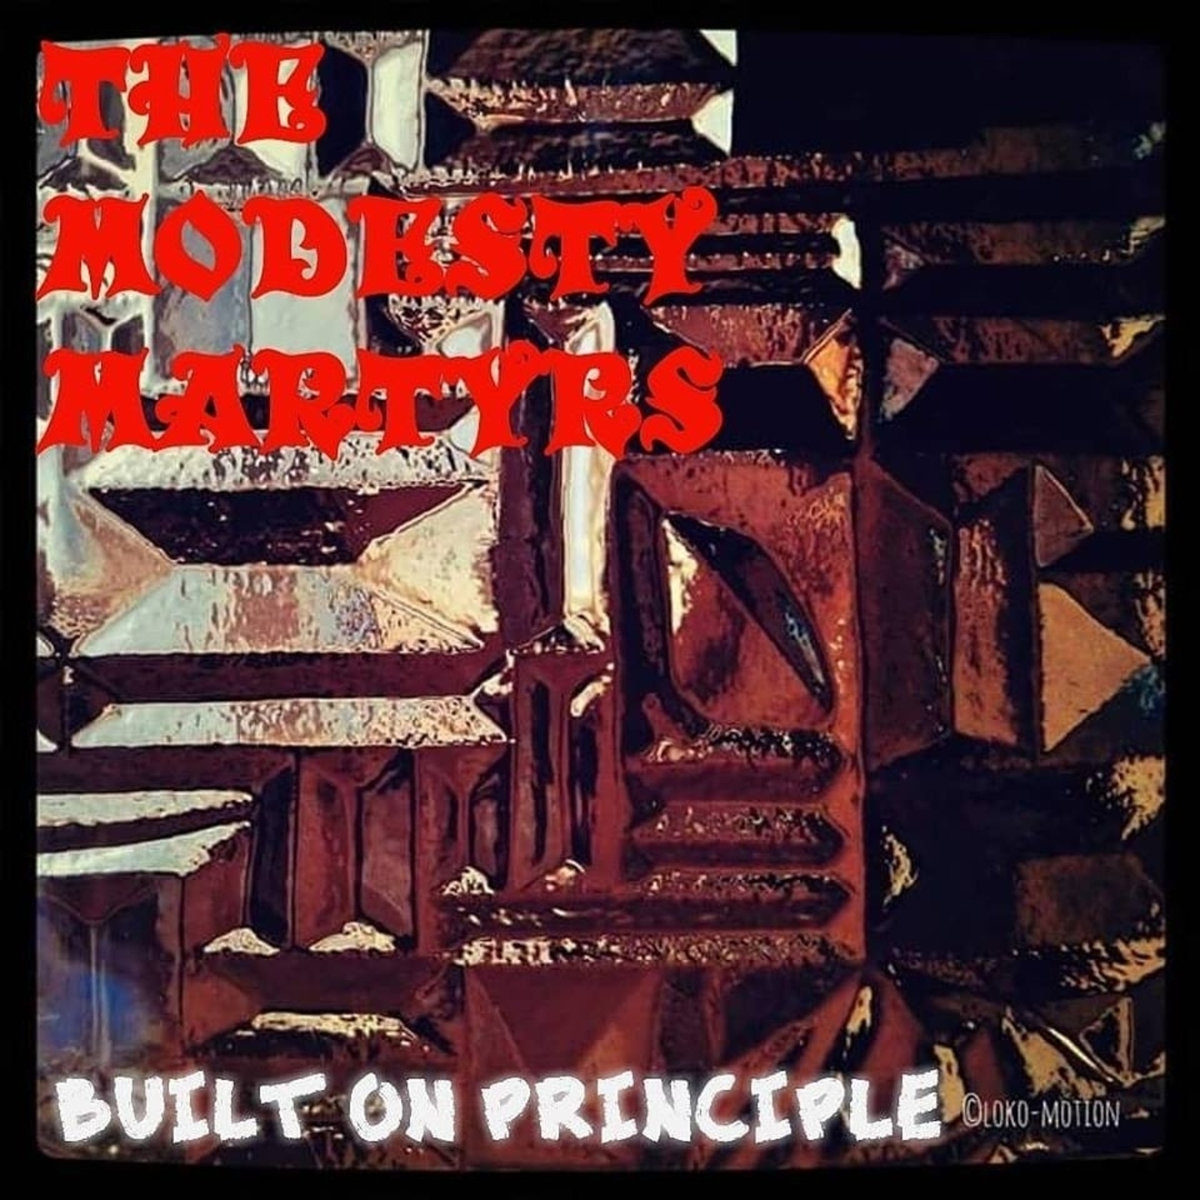 Built on Principle – The Modesty Martyrs EP